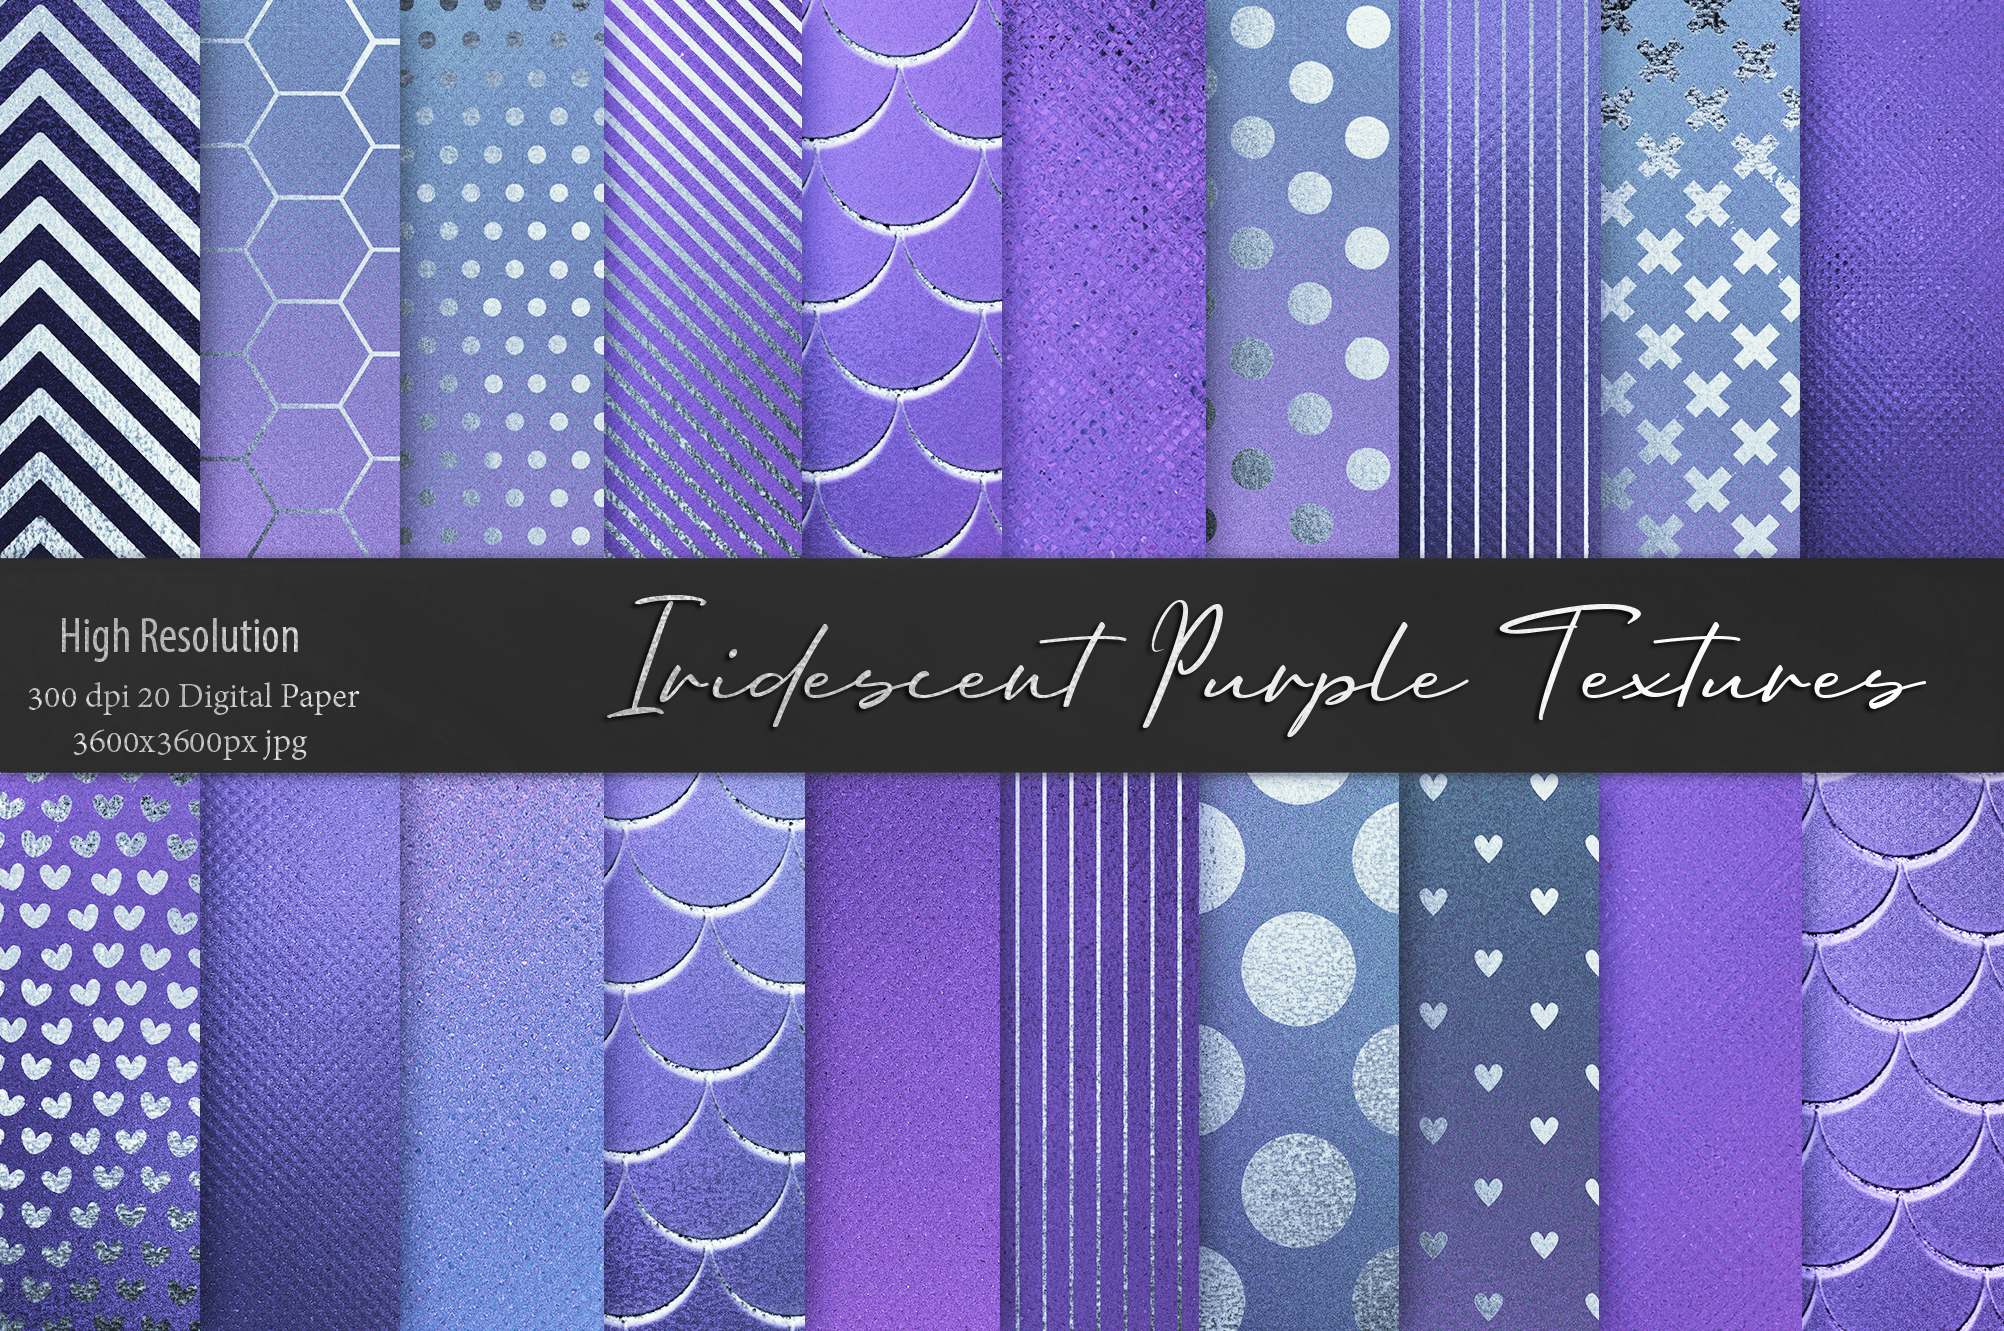 Iridescent Marble and Glitter Textures BUNDLE example image 11